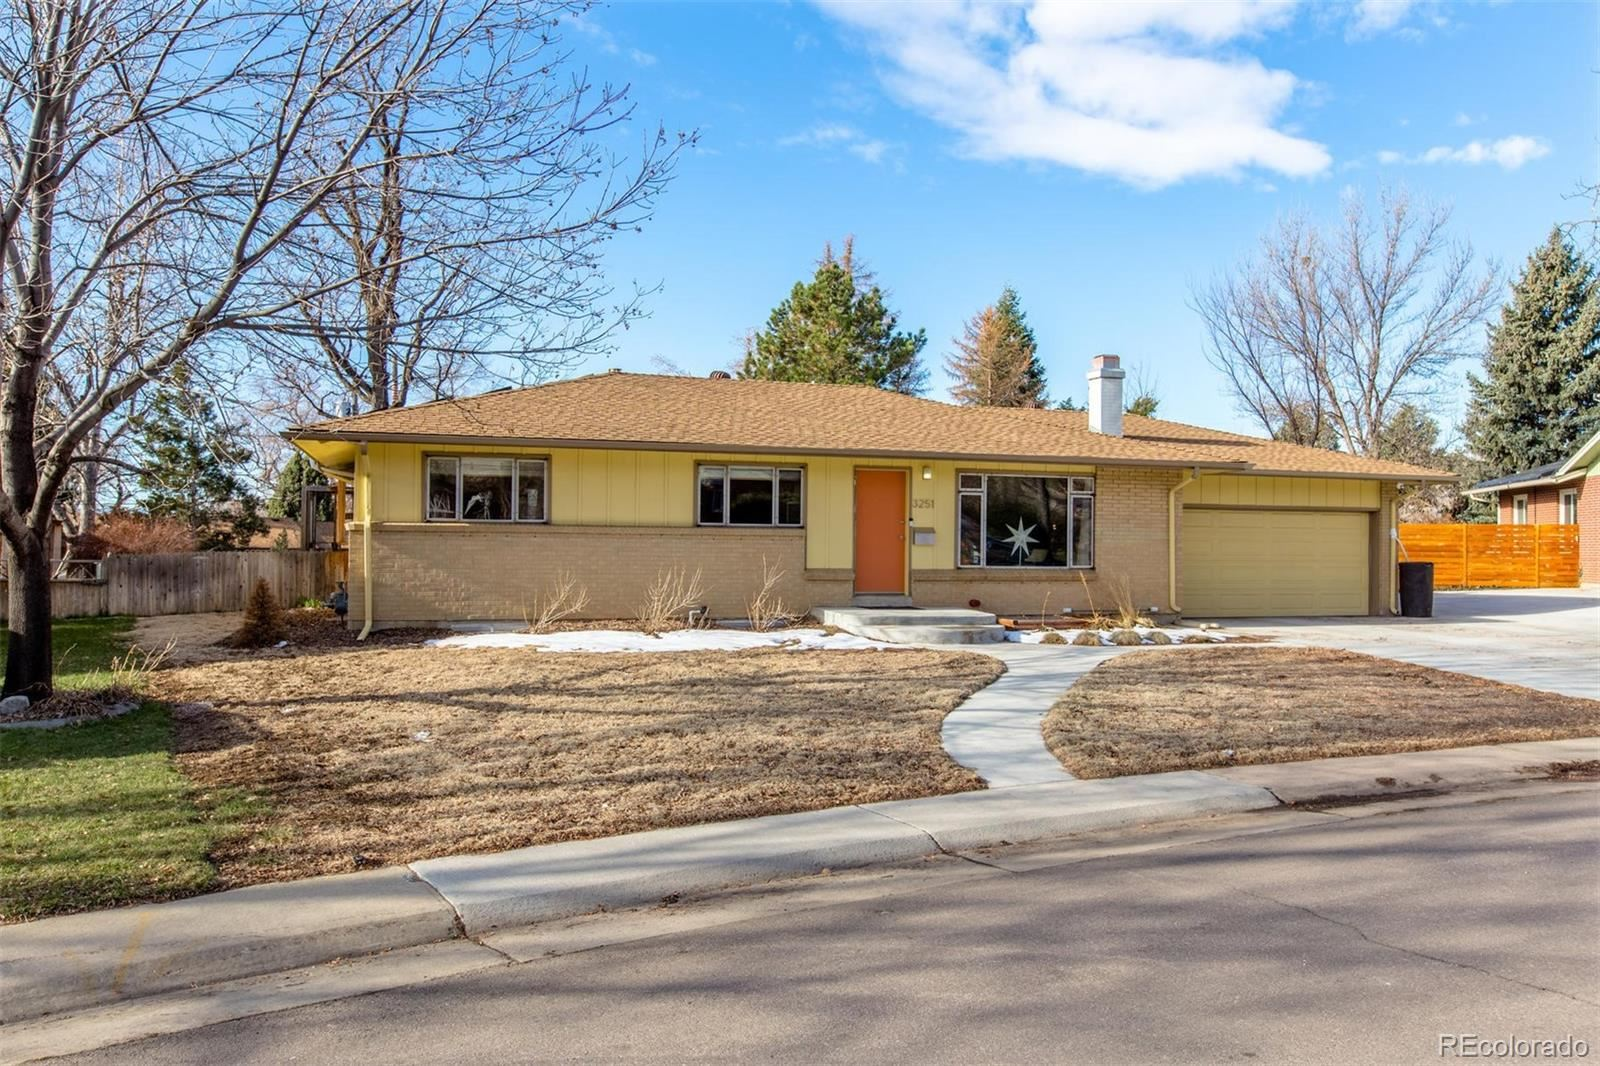 3251 S Mabry Way, Denver, CO 80236 - #: 6741218